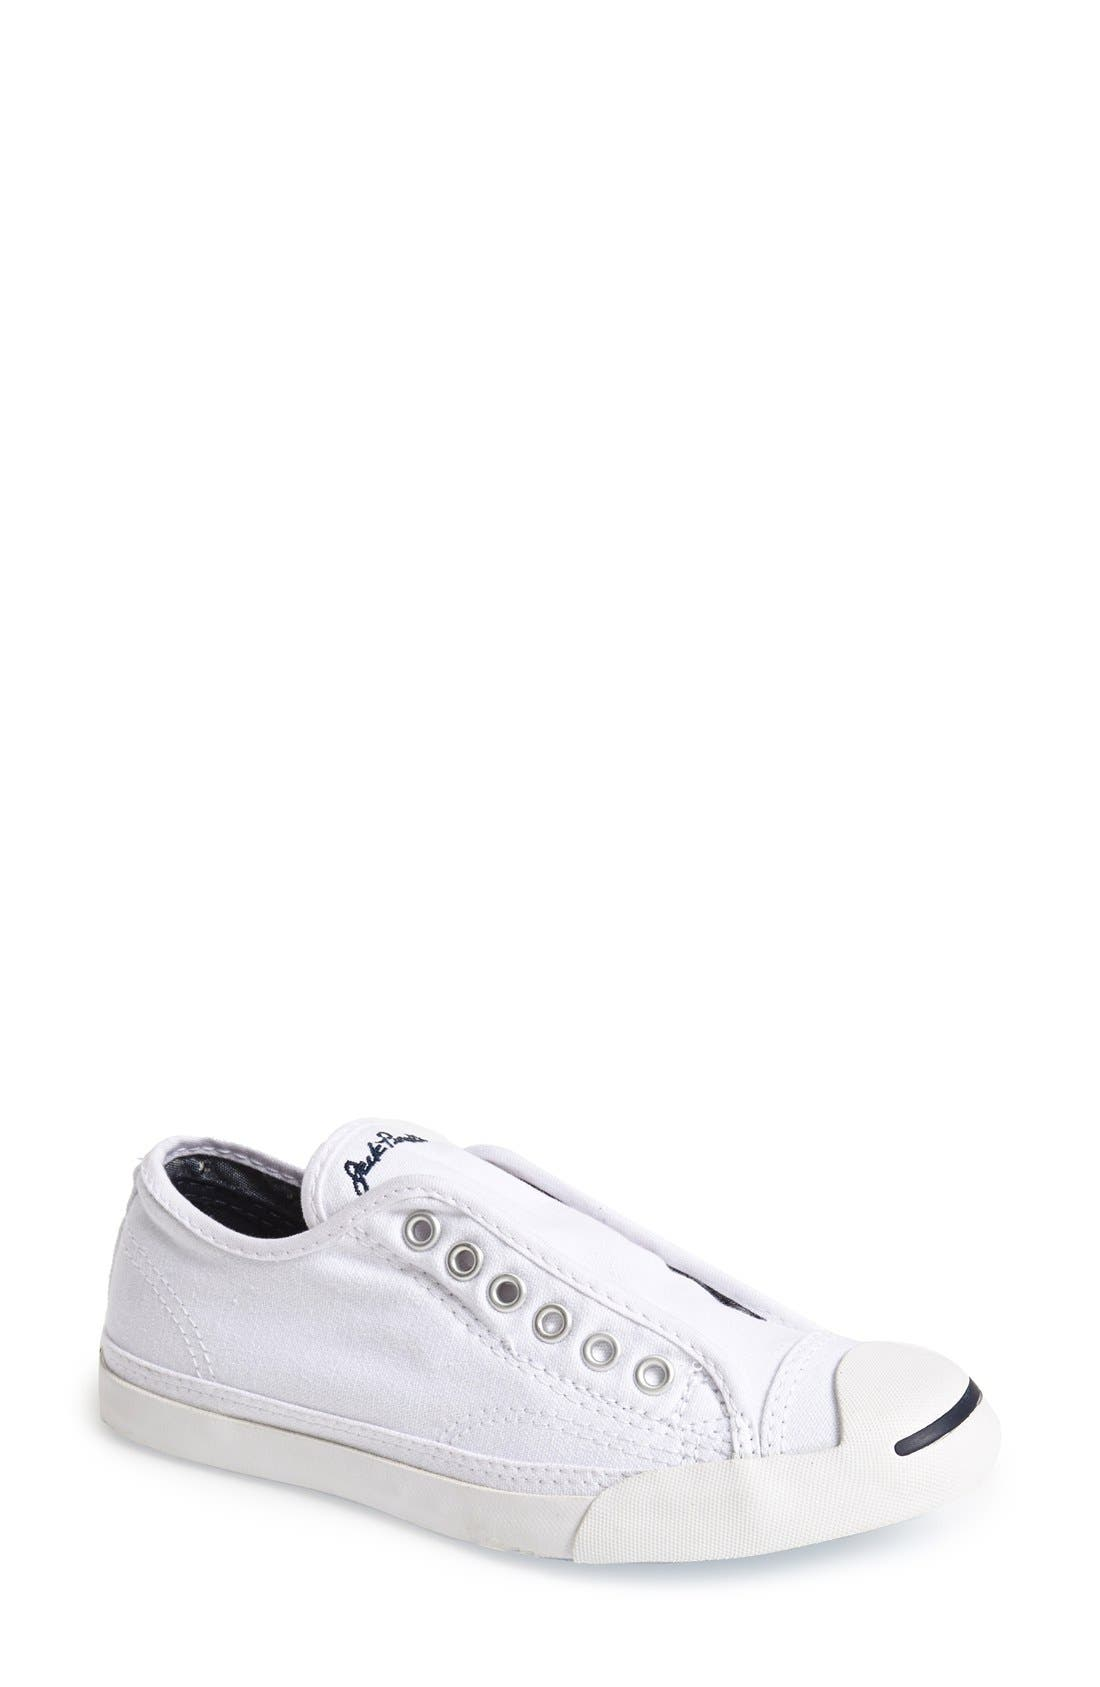 CONVERSE 'Jack Purcell - LP' Low Top Sneaker